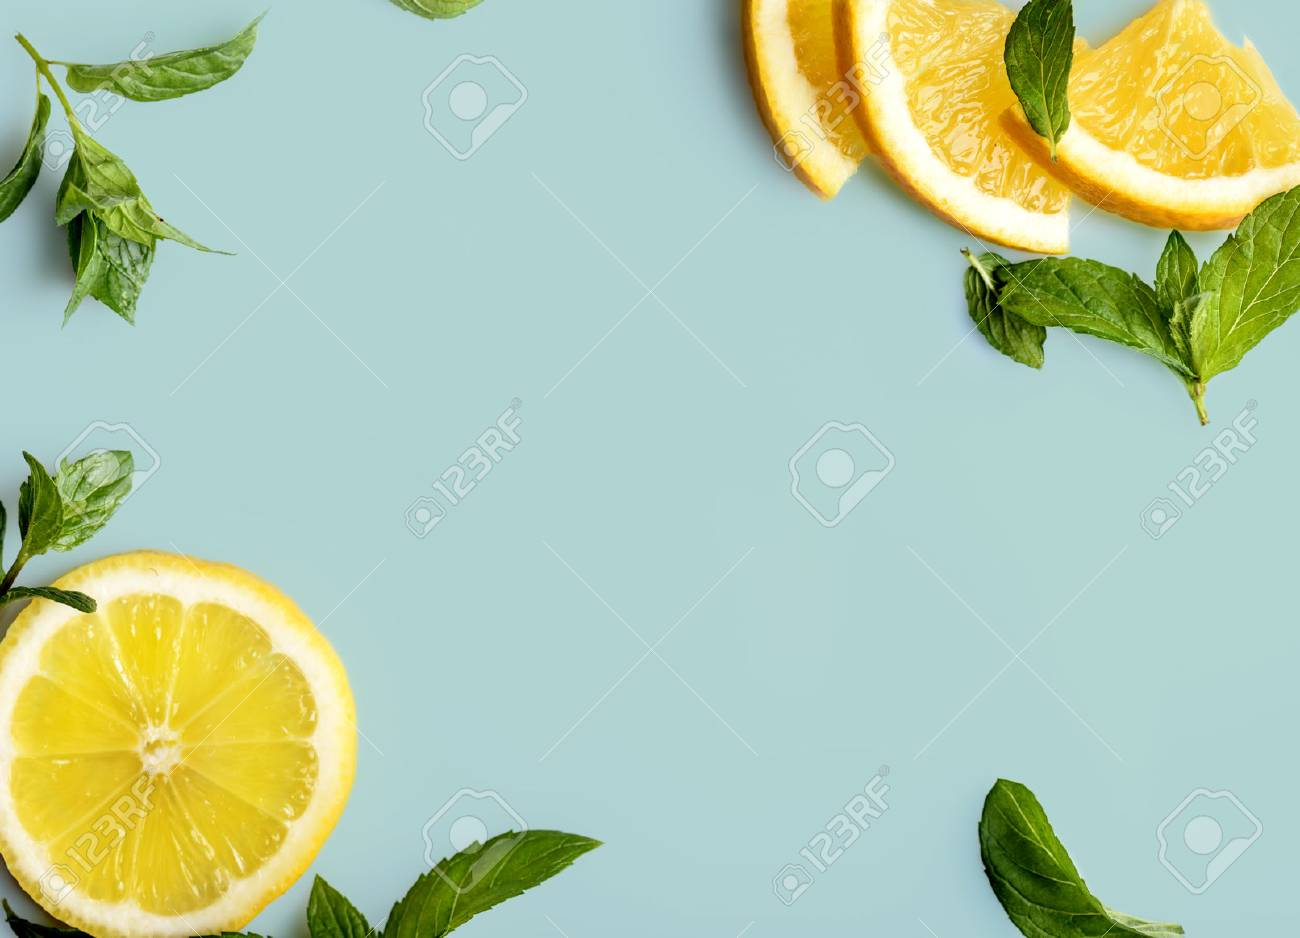 Citrus slices and mint herbs frame on retro mint background with copyspace - 64143397